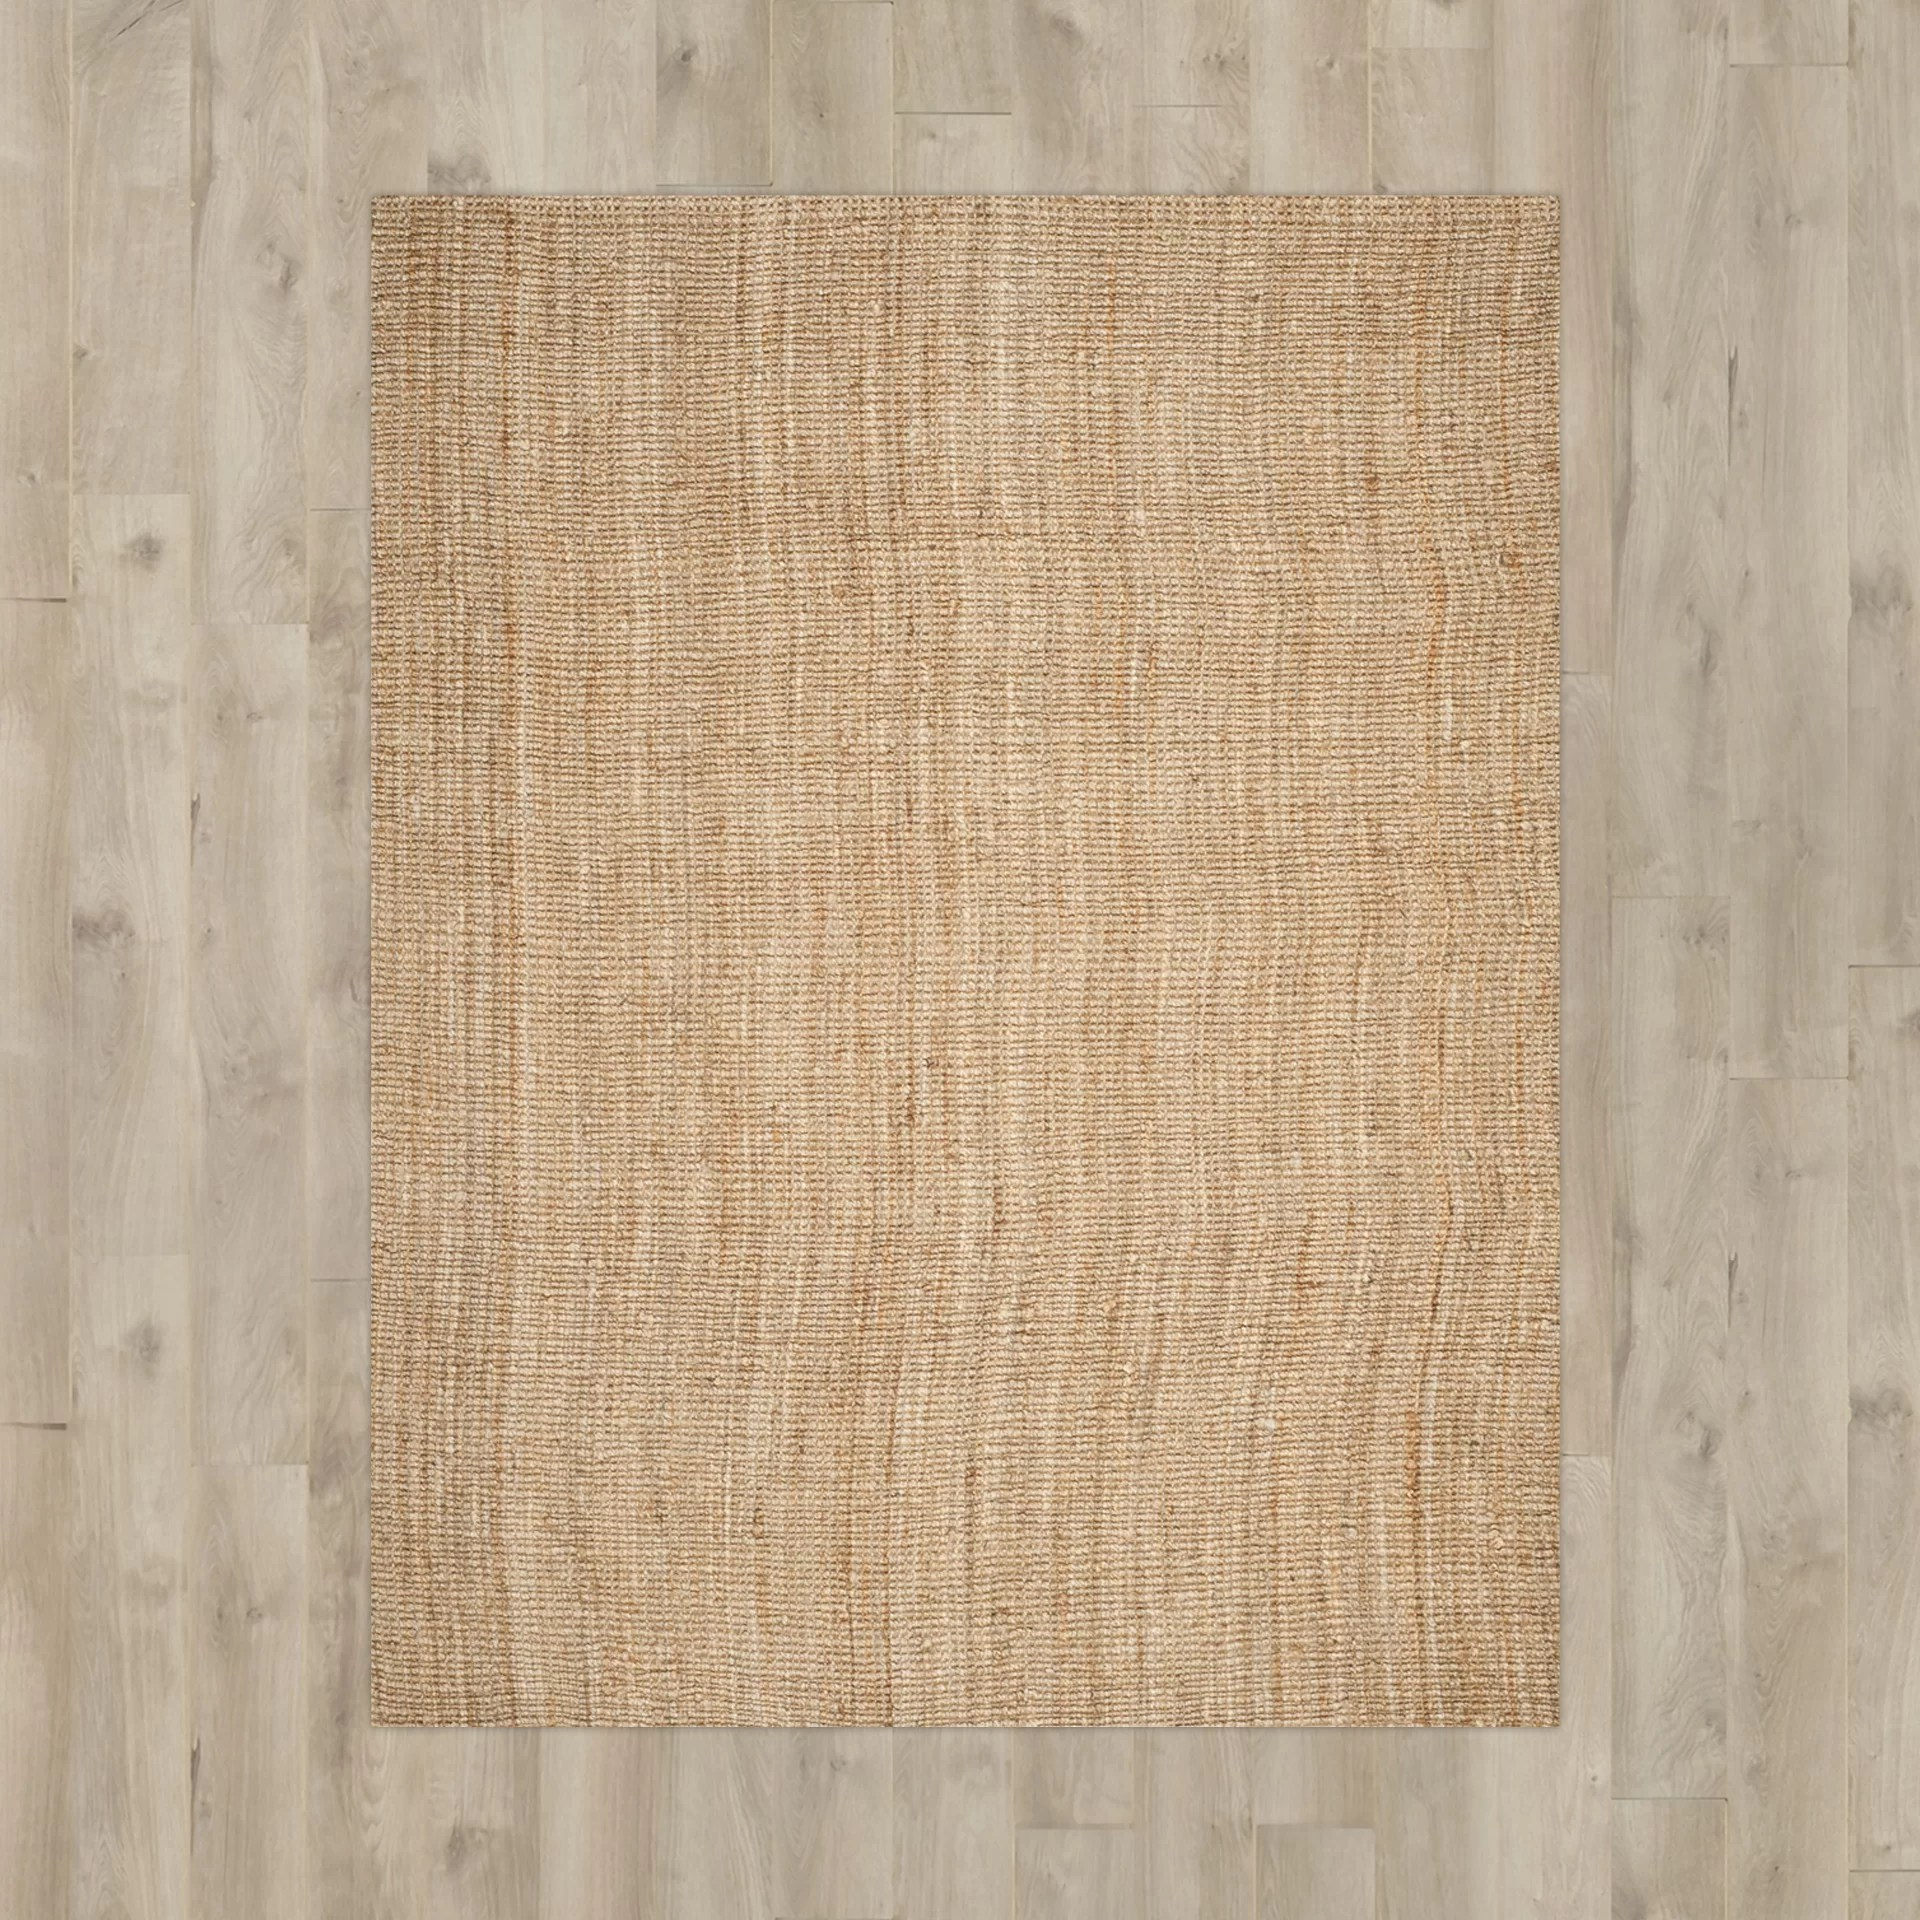 Contemporary Area Rugs Charlton Home Gaines Natural Contemporary Area Rug